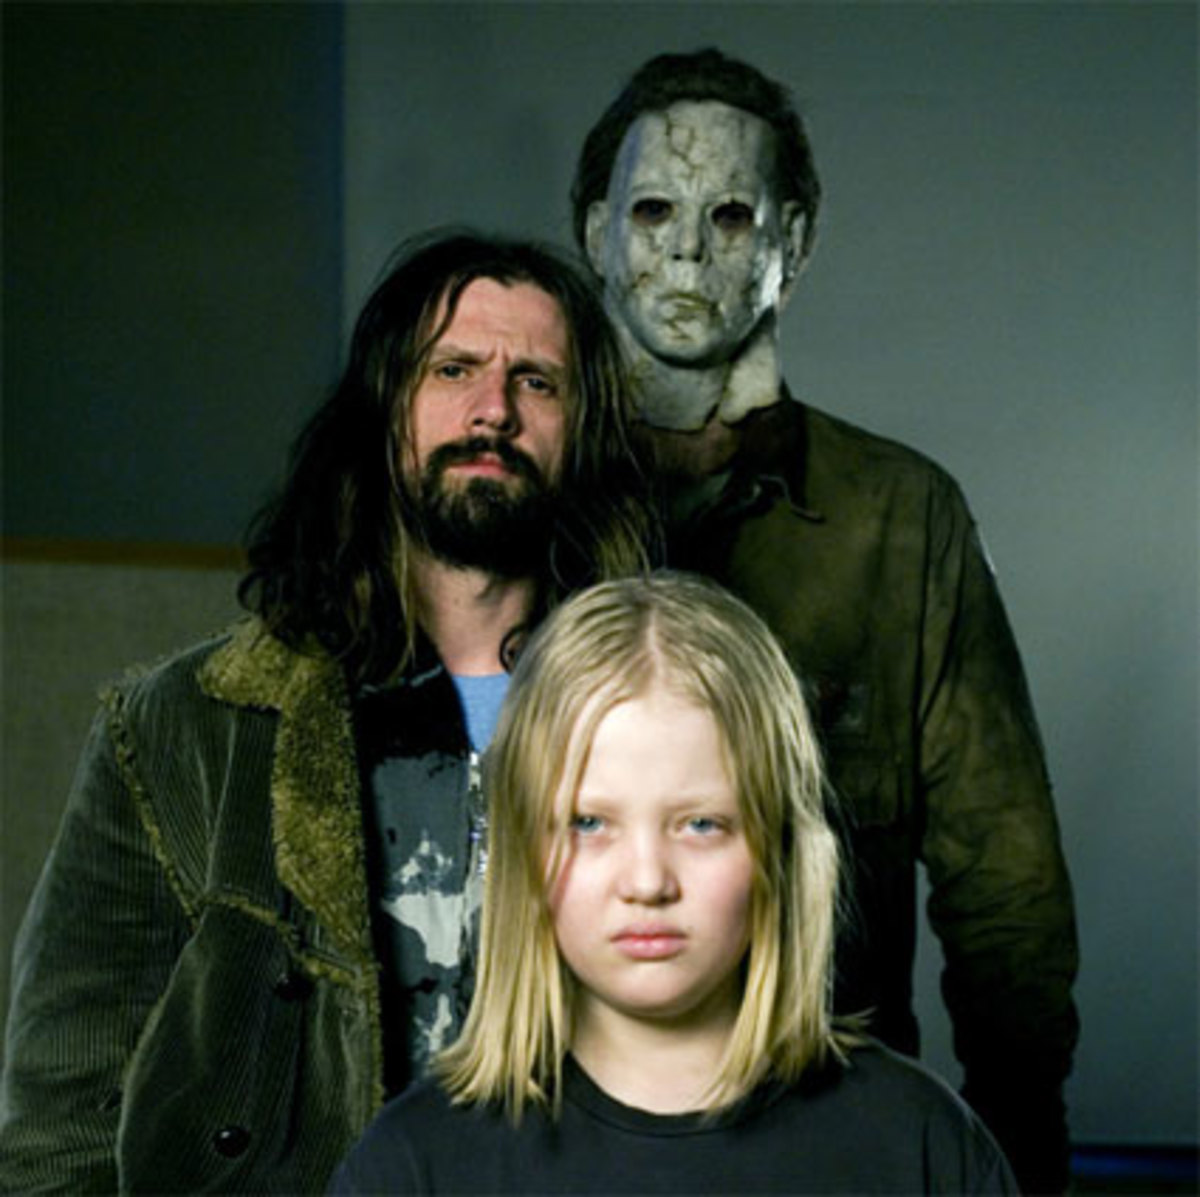 Young Michael Meyers, Rob Zombie and the masked killer